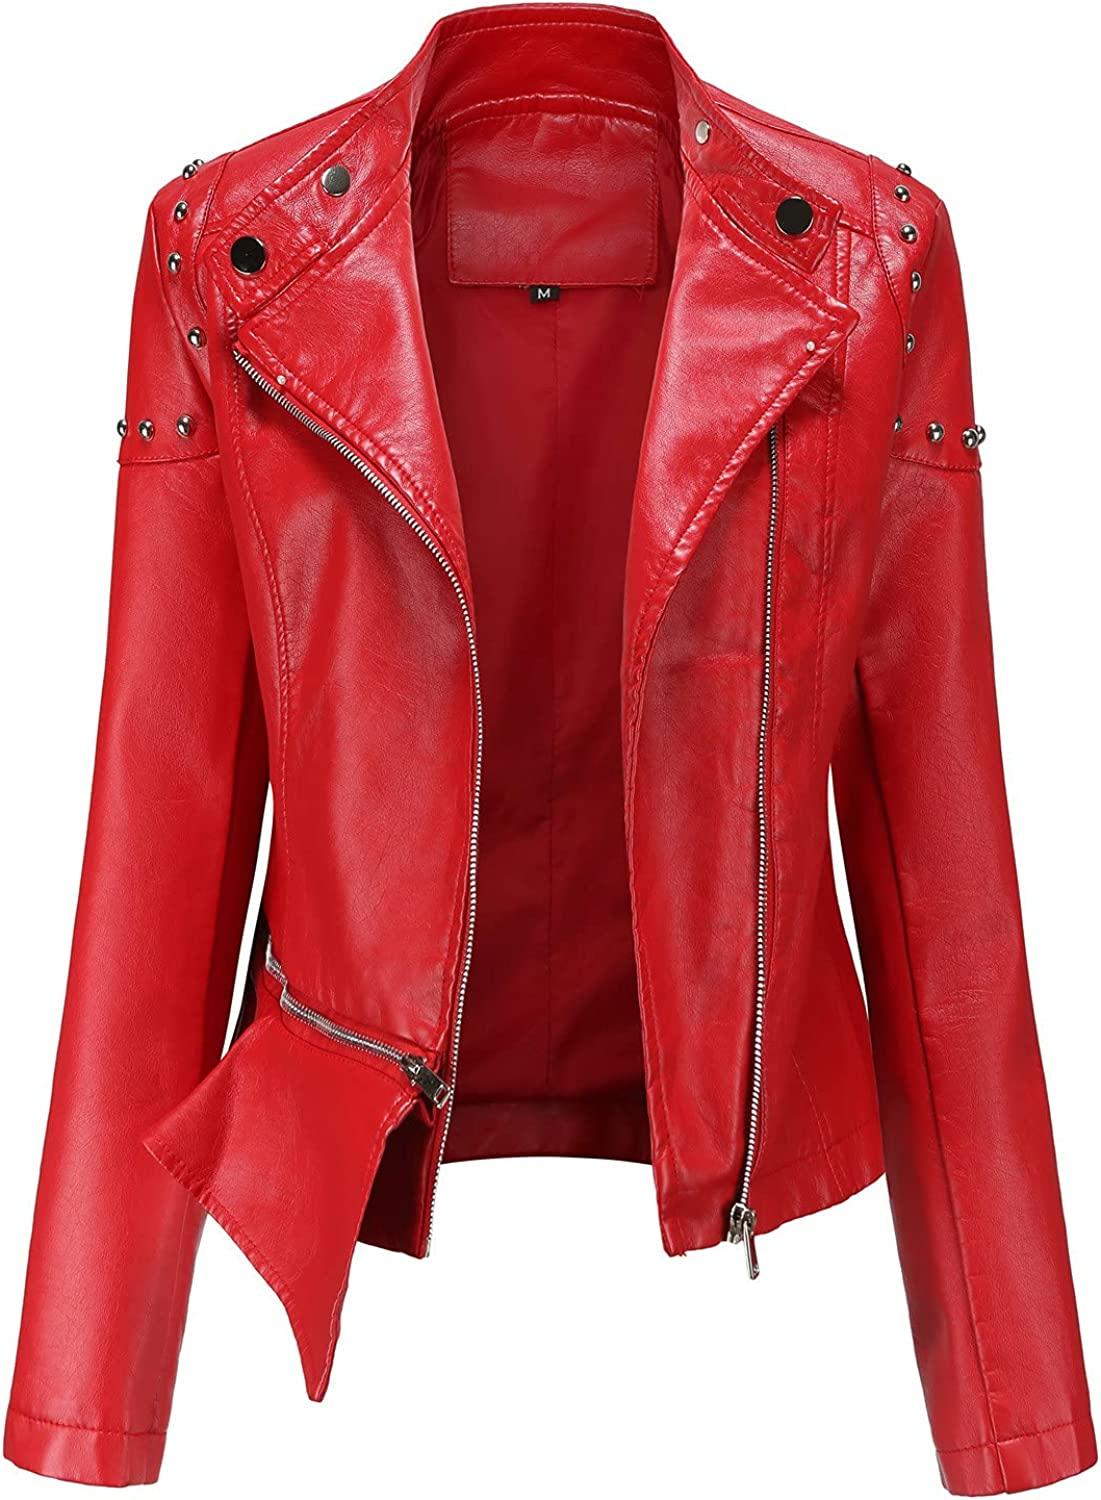 Euone_Clothes Jackets for Rare Overseas parallel import regular item Women Fashion Zipper Leather Sh